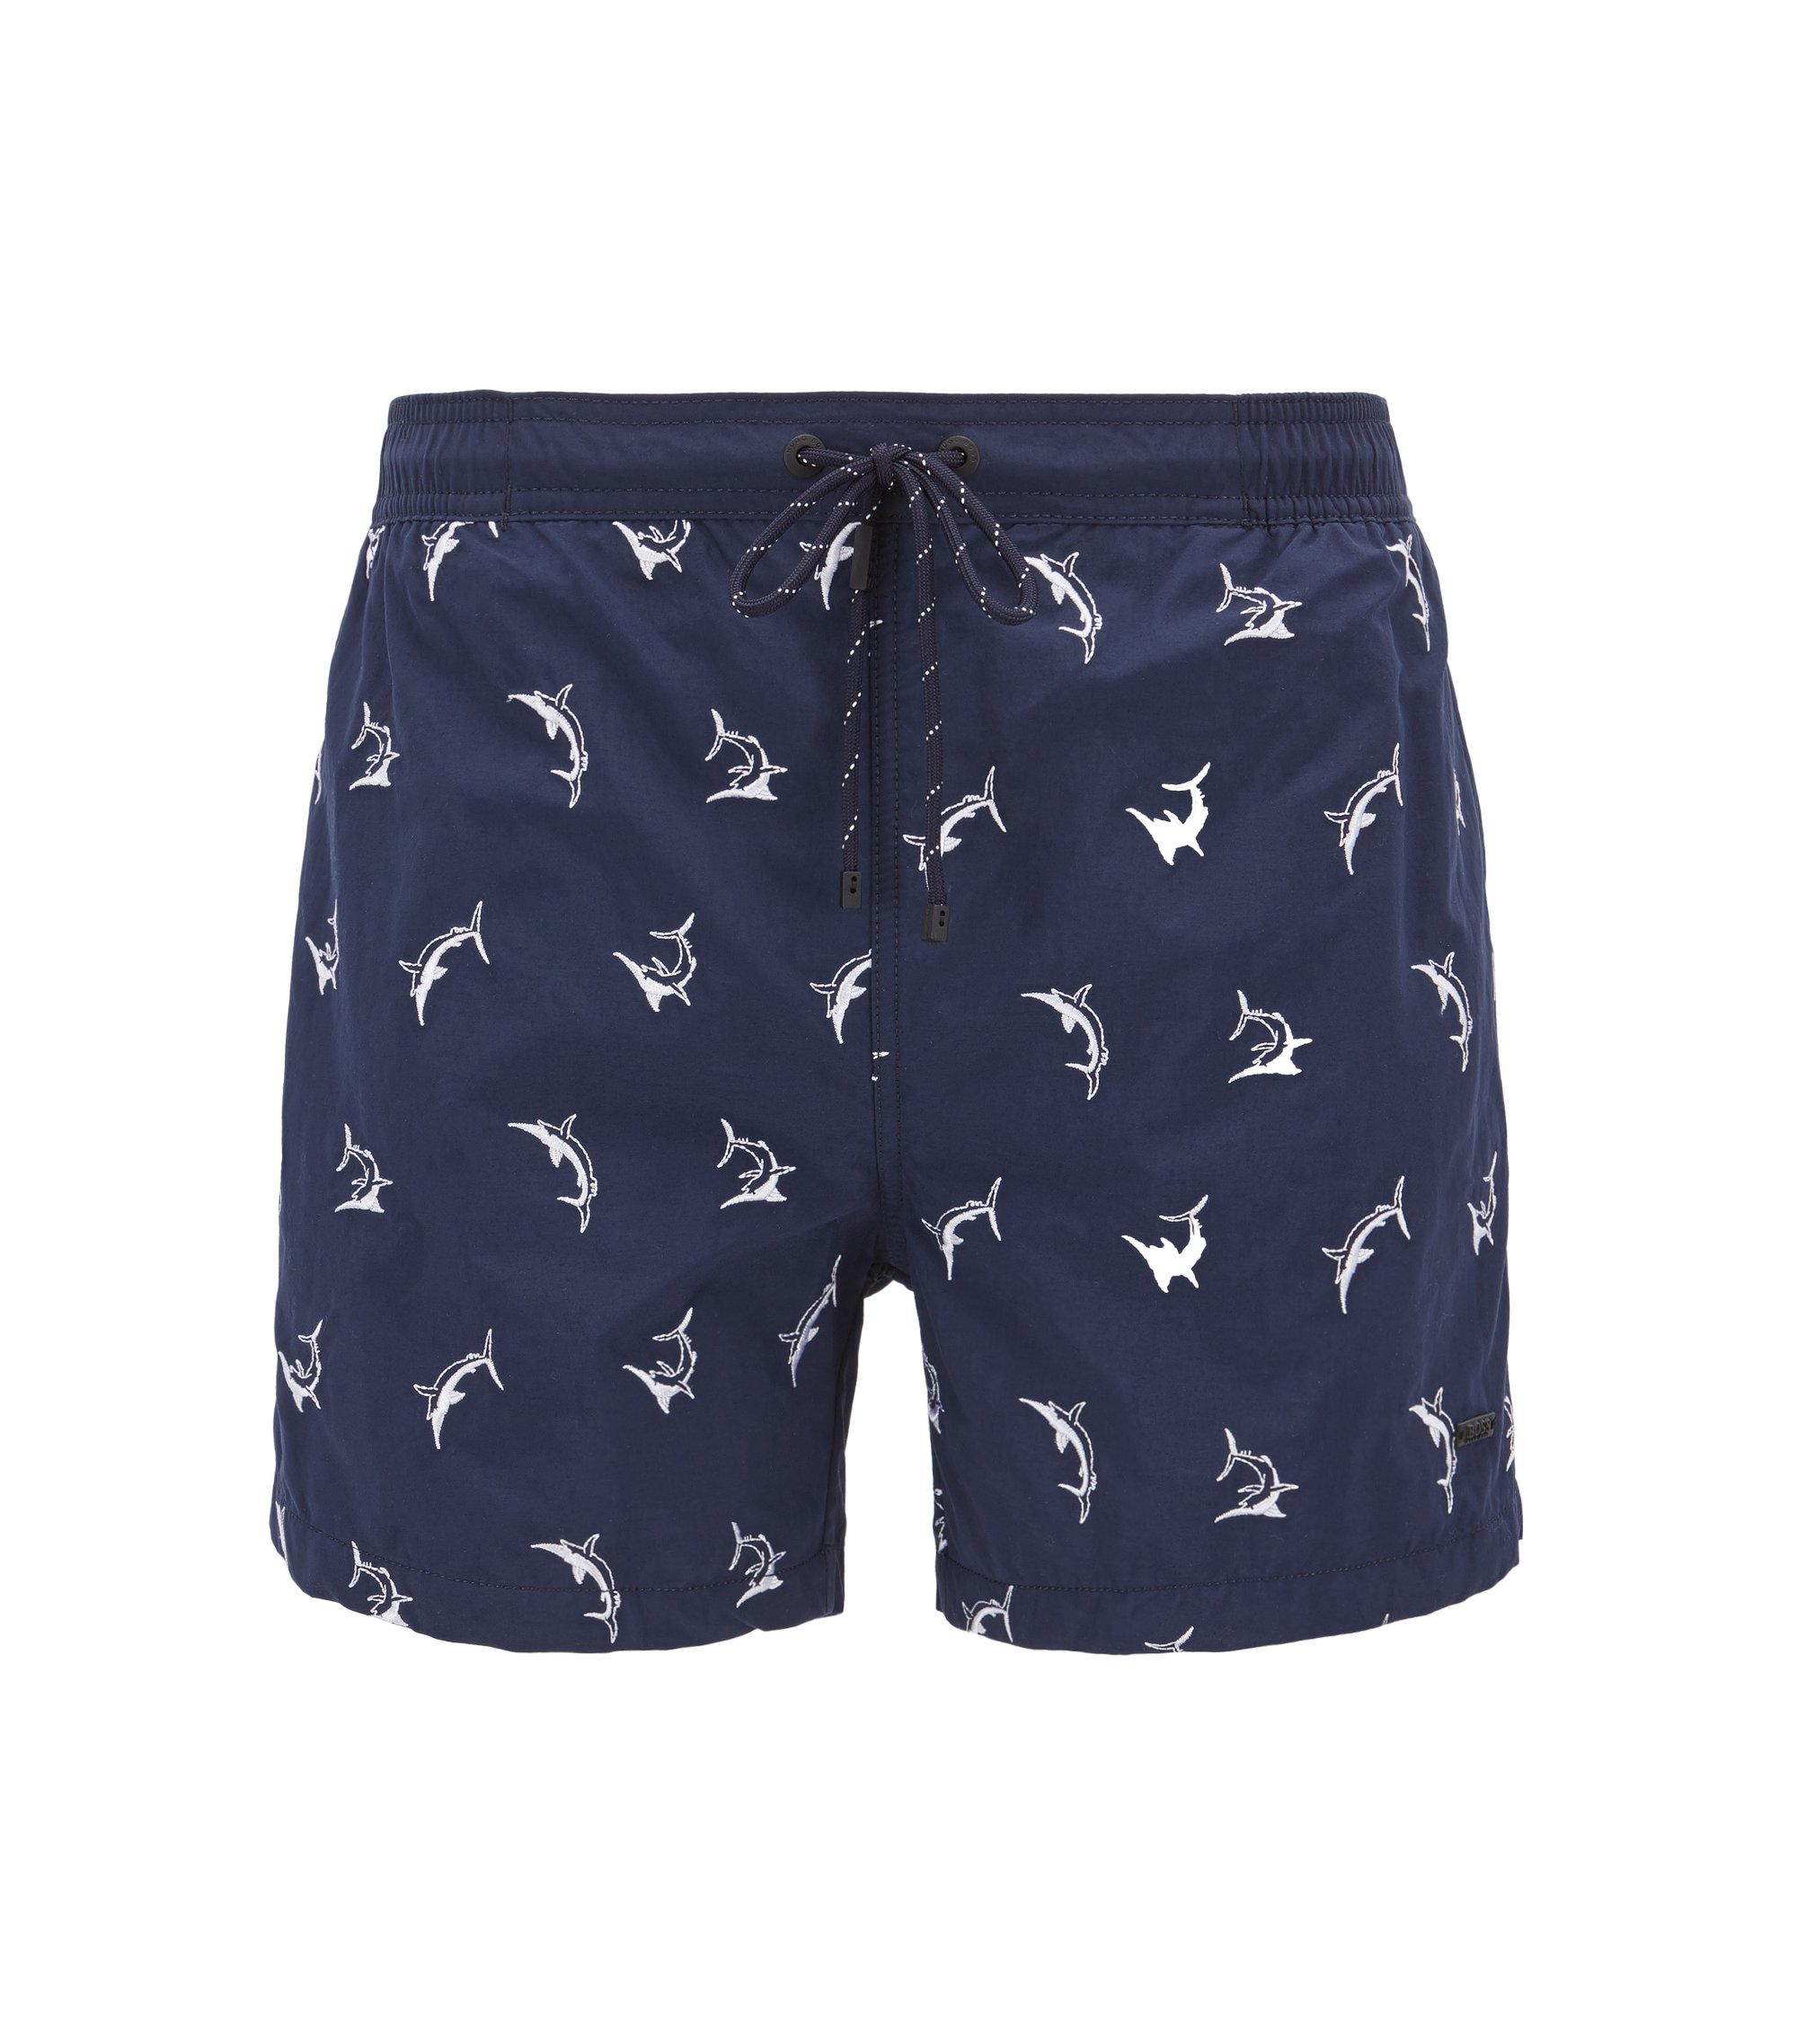 Shark-embroidered swim shorts with drawstring waist, Open Blue